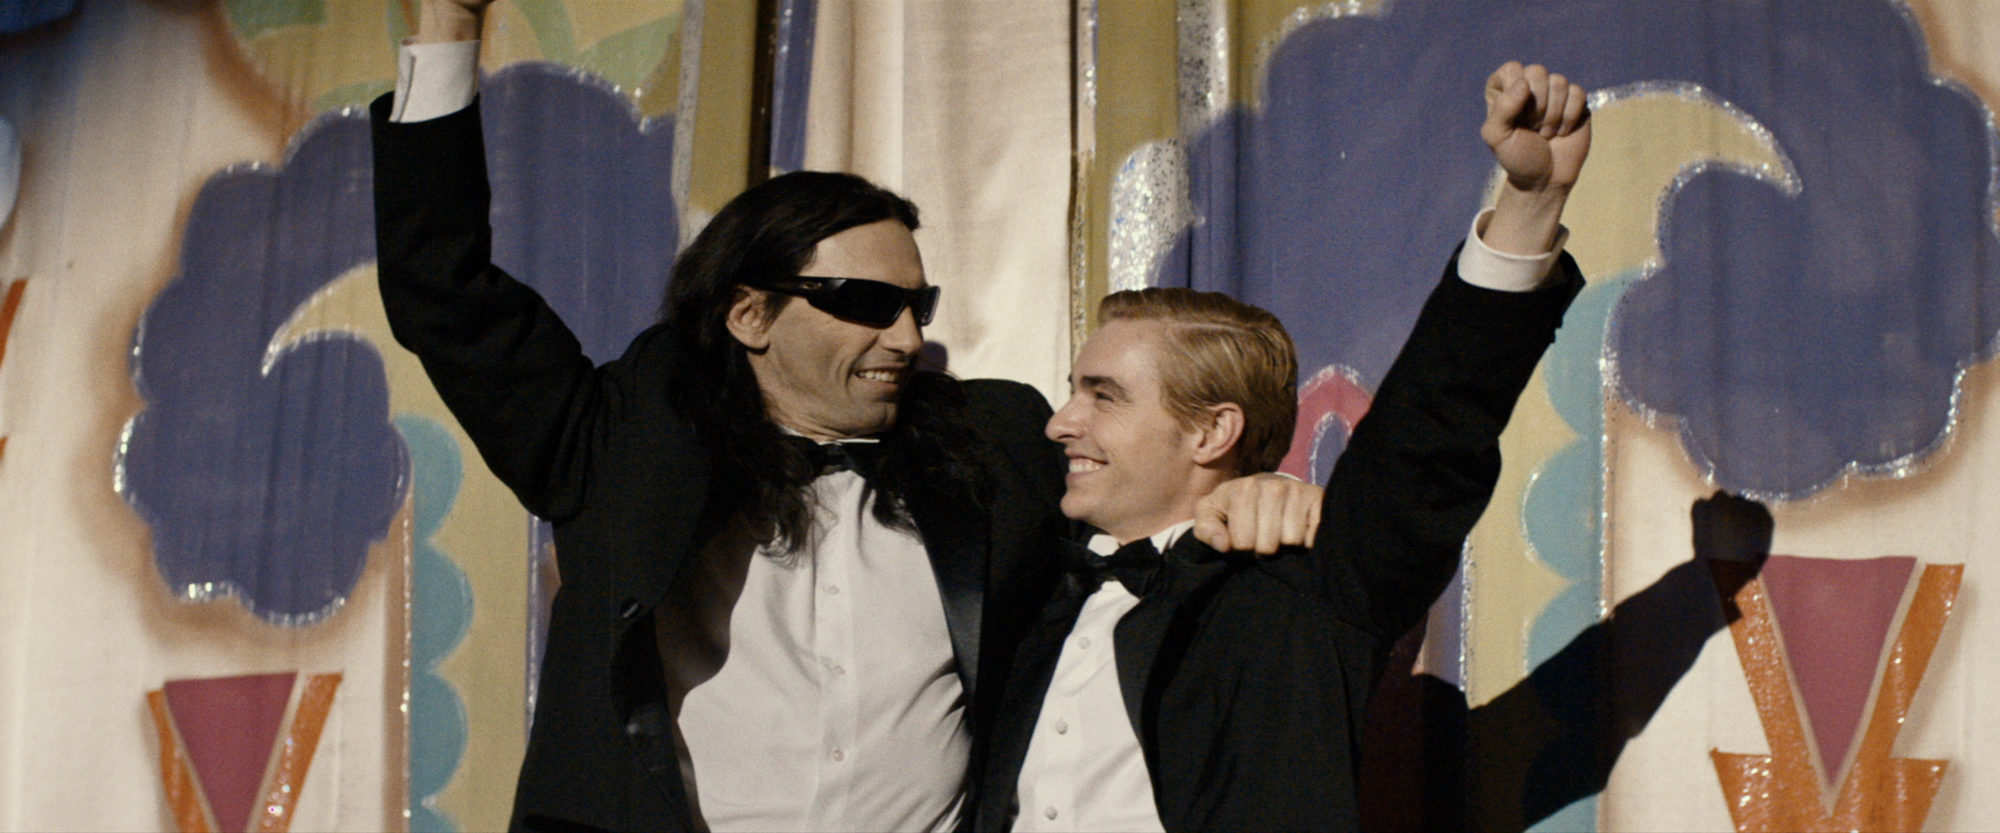 The Disaster Artist A24